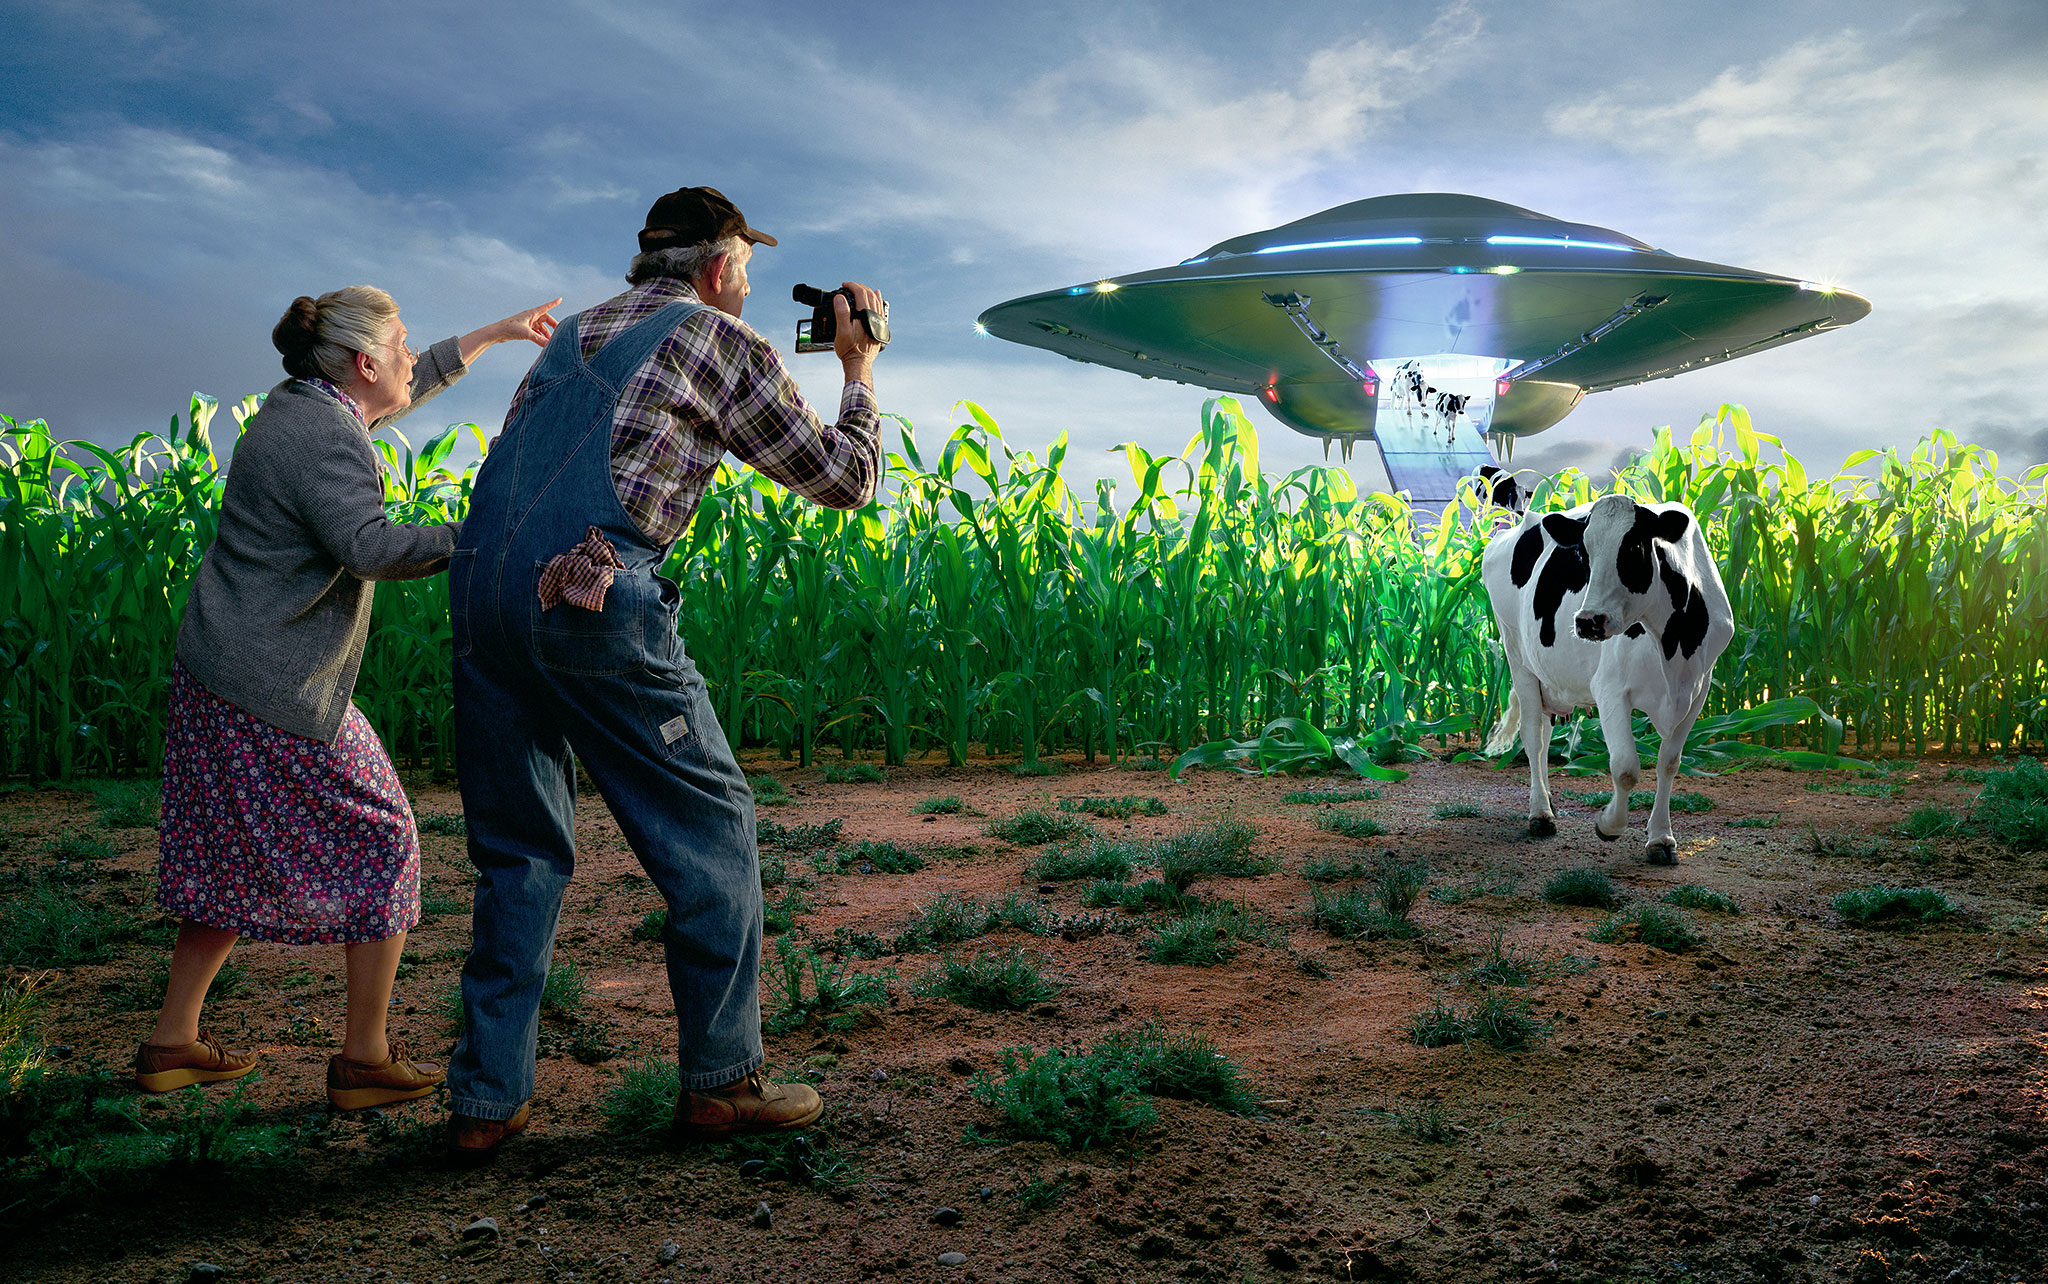 Sony Camcorders | cows disembarking a UFO | miniature set | Glen Wexler | Advertising Photographer